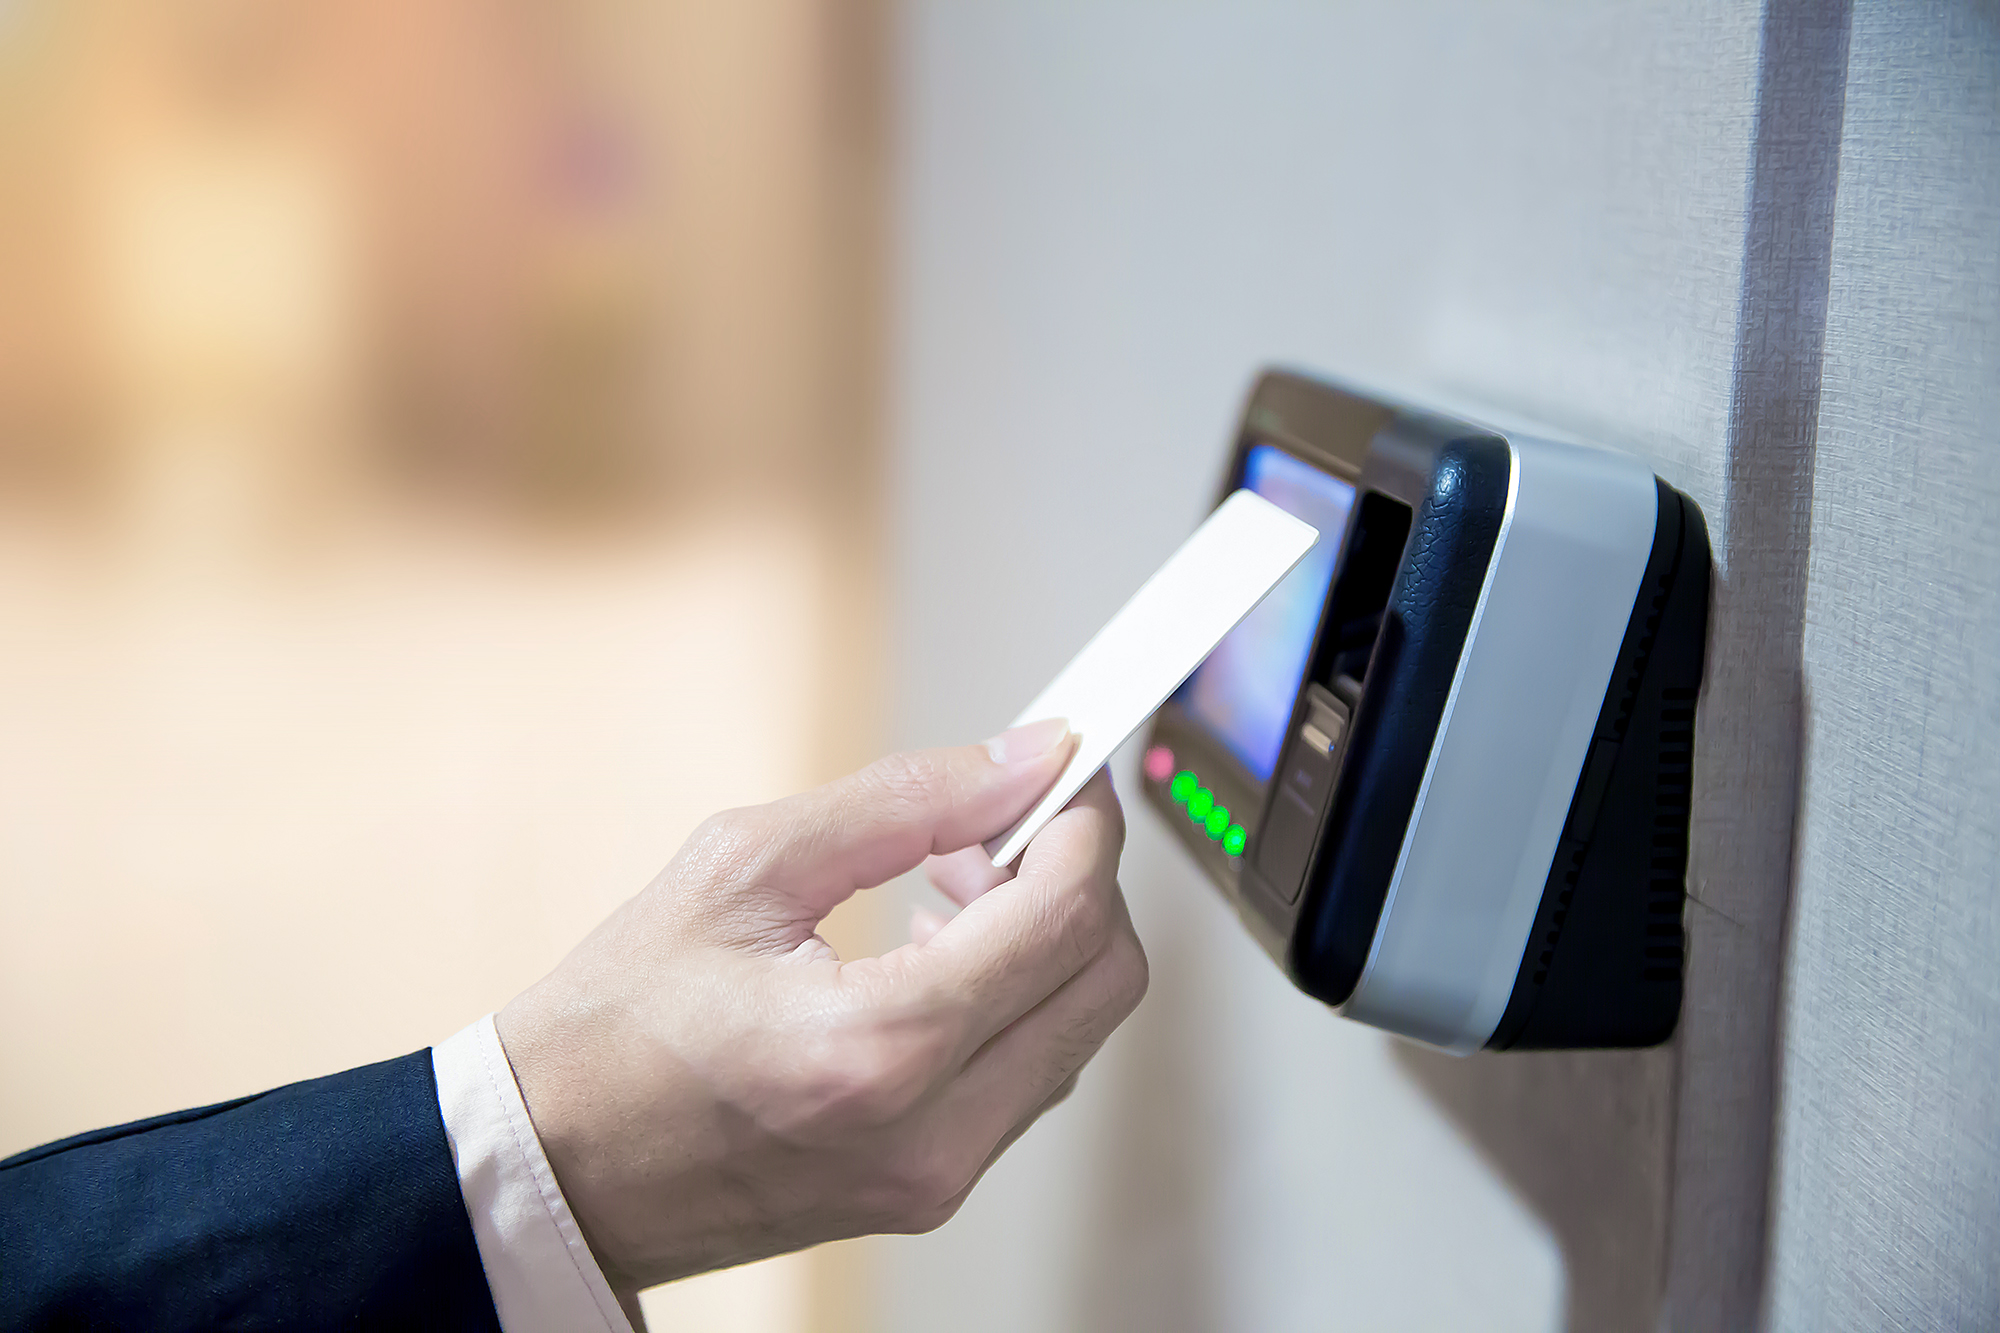 Engineers using key card to identity verification for access the